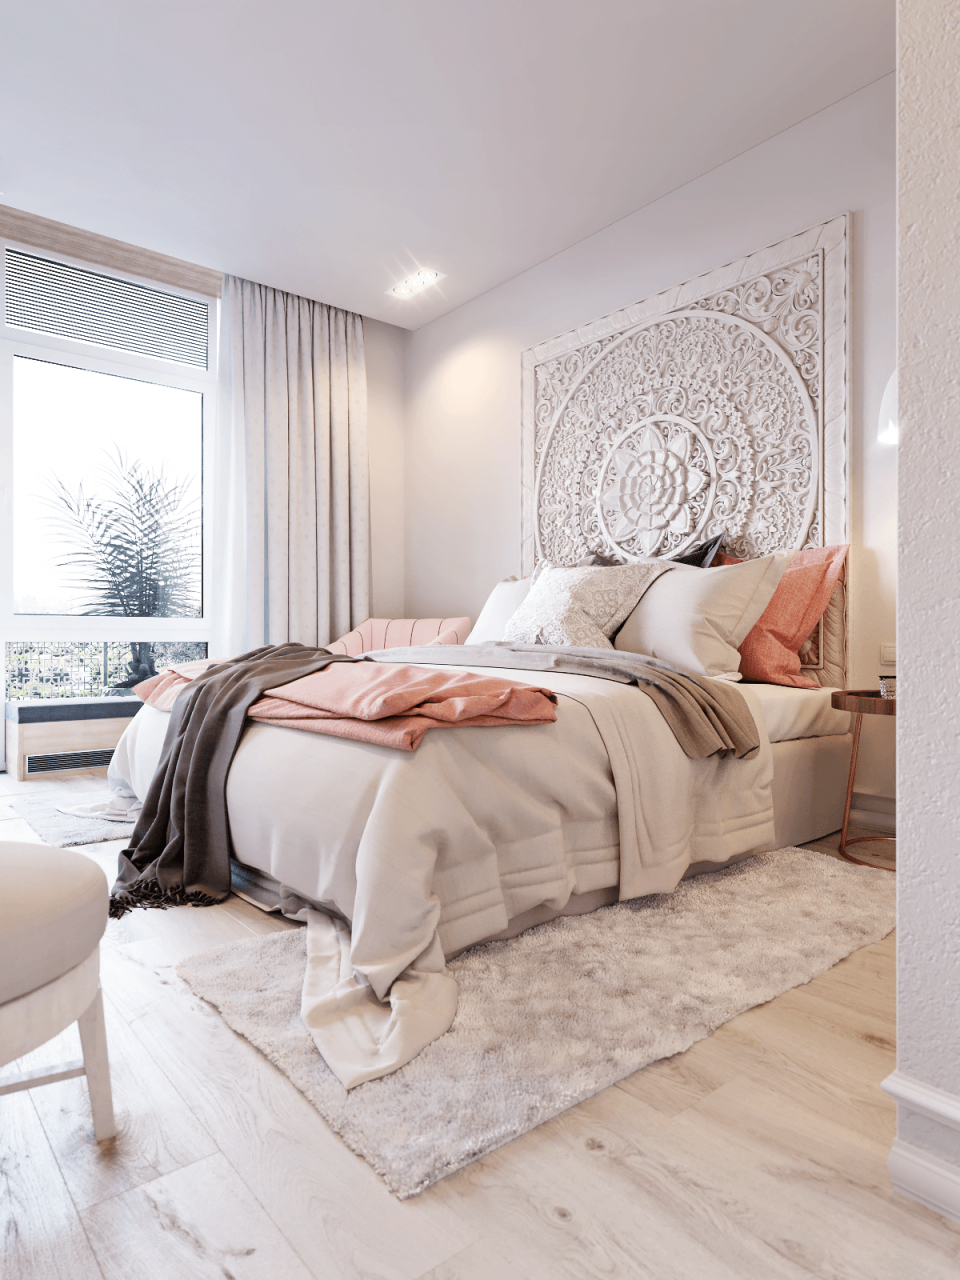 25+ Best Bedroom Wall Decor Ideas And Designs For 2020 throughout Unique Wall Decor Bedroom Ideas